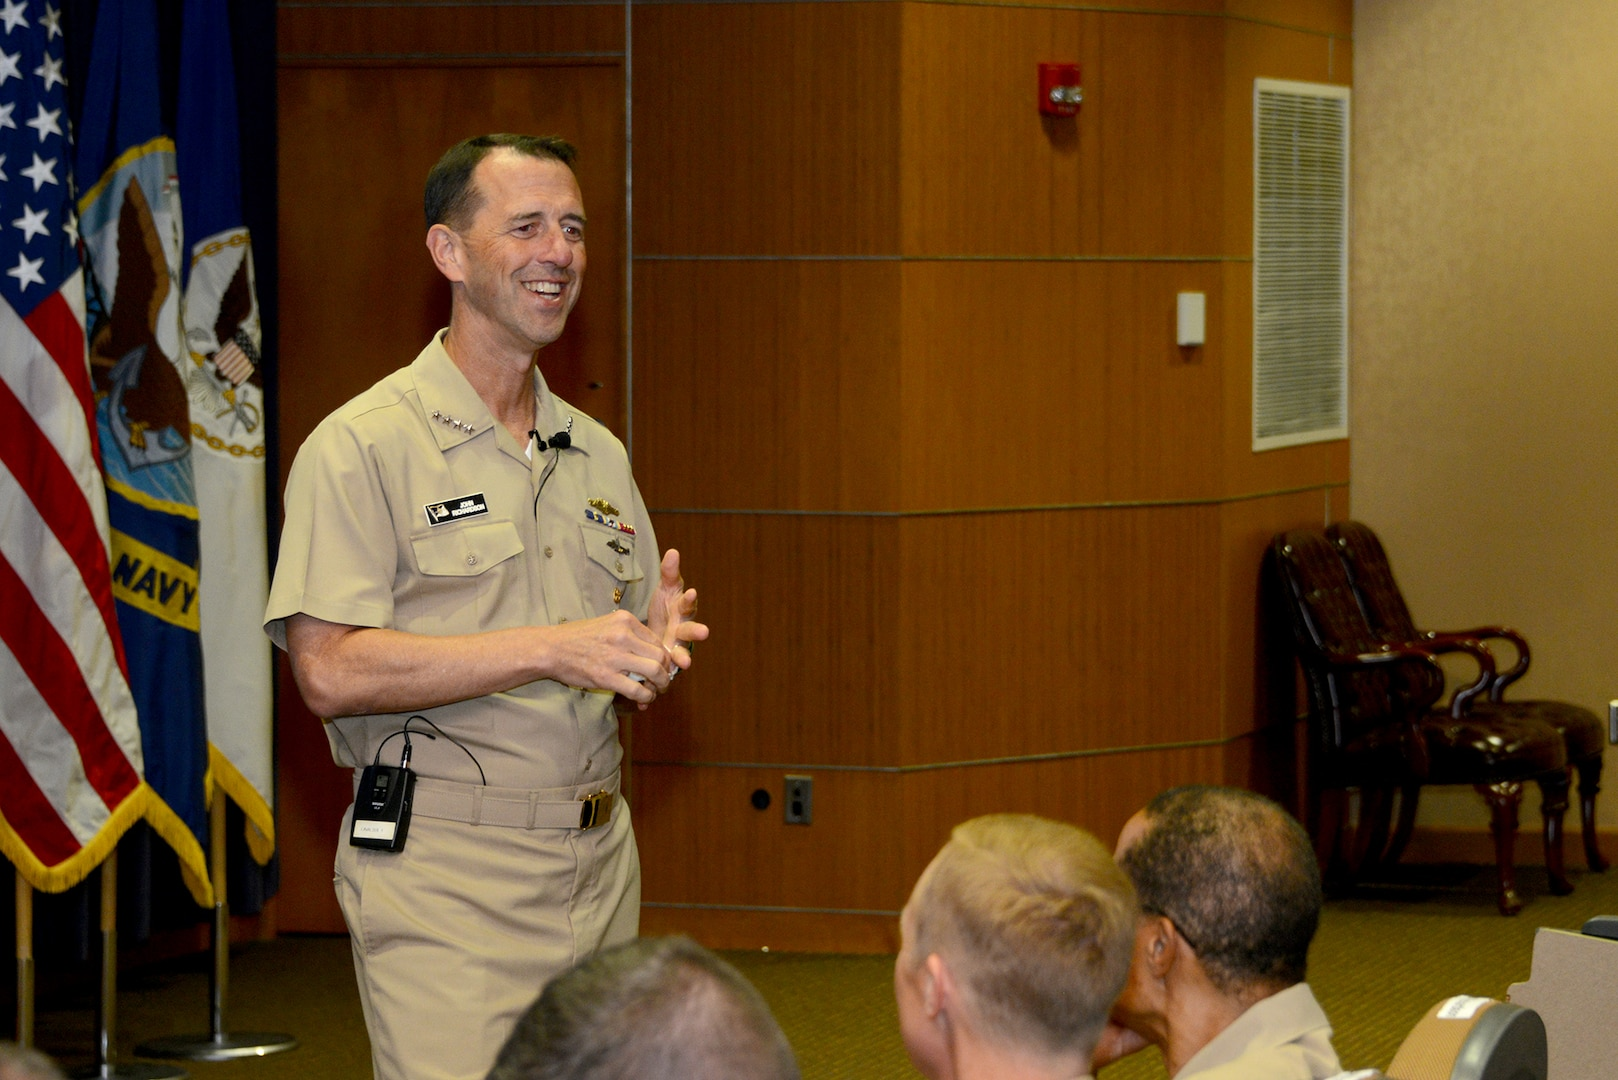 The Chief of Naval Operations (CNO), U.S. Navy Adm. John M. Richardson, provides remarks during a Navy all-hands call at Offutt Air Force Base, Neb., Aug. 24, 2016. During the forum, Richardson discussed the U.S. Navy's design for maintaining maritime security today and into the future and answered questions from members of the audience. While here, Richardson also participated in discussions with U.S. Navy Adm. Cecil D. Haney, U.S. Strategic Command (USSTRATCOM) commander, and other USSTRATCOM leaders on modernization of the sea-based leg of the nuclear triad and other areas of collaboration and mutual interest. A member of the Joint Chiefs of Staff, the CNO is the principal naval adviser to the president and to the Secretary of the Navy (SECNAV) on the conduct of war, and is the principal adviser and naval executive to the SECNAV on the conduct of activities of the Department of the Navy. One of nine DoD unified combatant commands, USSTRATCOM has global strategic missions assigned through the Unified Command Plan, which include strategic deterrence; space operations; cyberspace operations; joint electronic warfare; global strike; missile defense; intelligence, surveillance and reconnaissance; combating weapons of mass destruction; and analysis and targeting. (U.S. Air Force photo by Staff Sgt. Jonathan Lovelady)